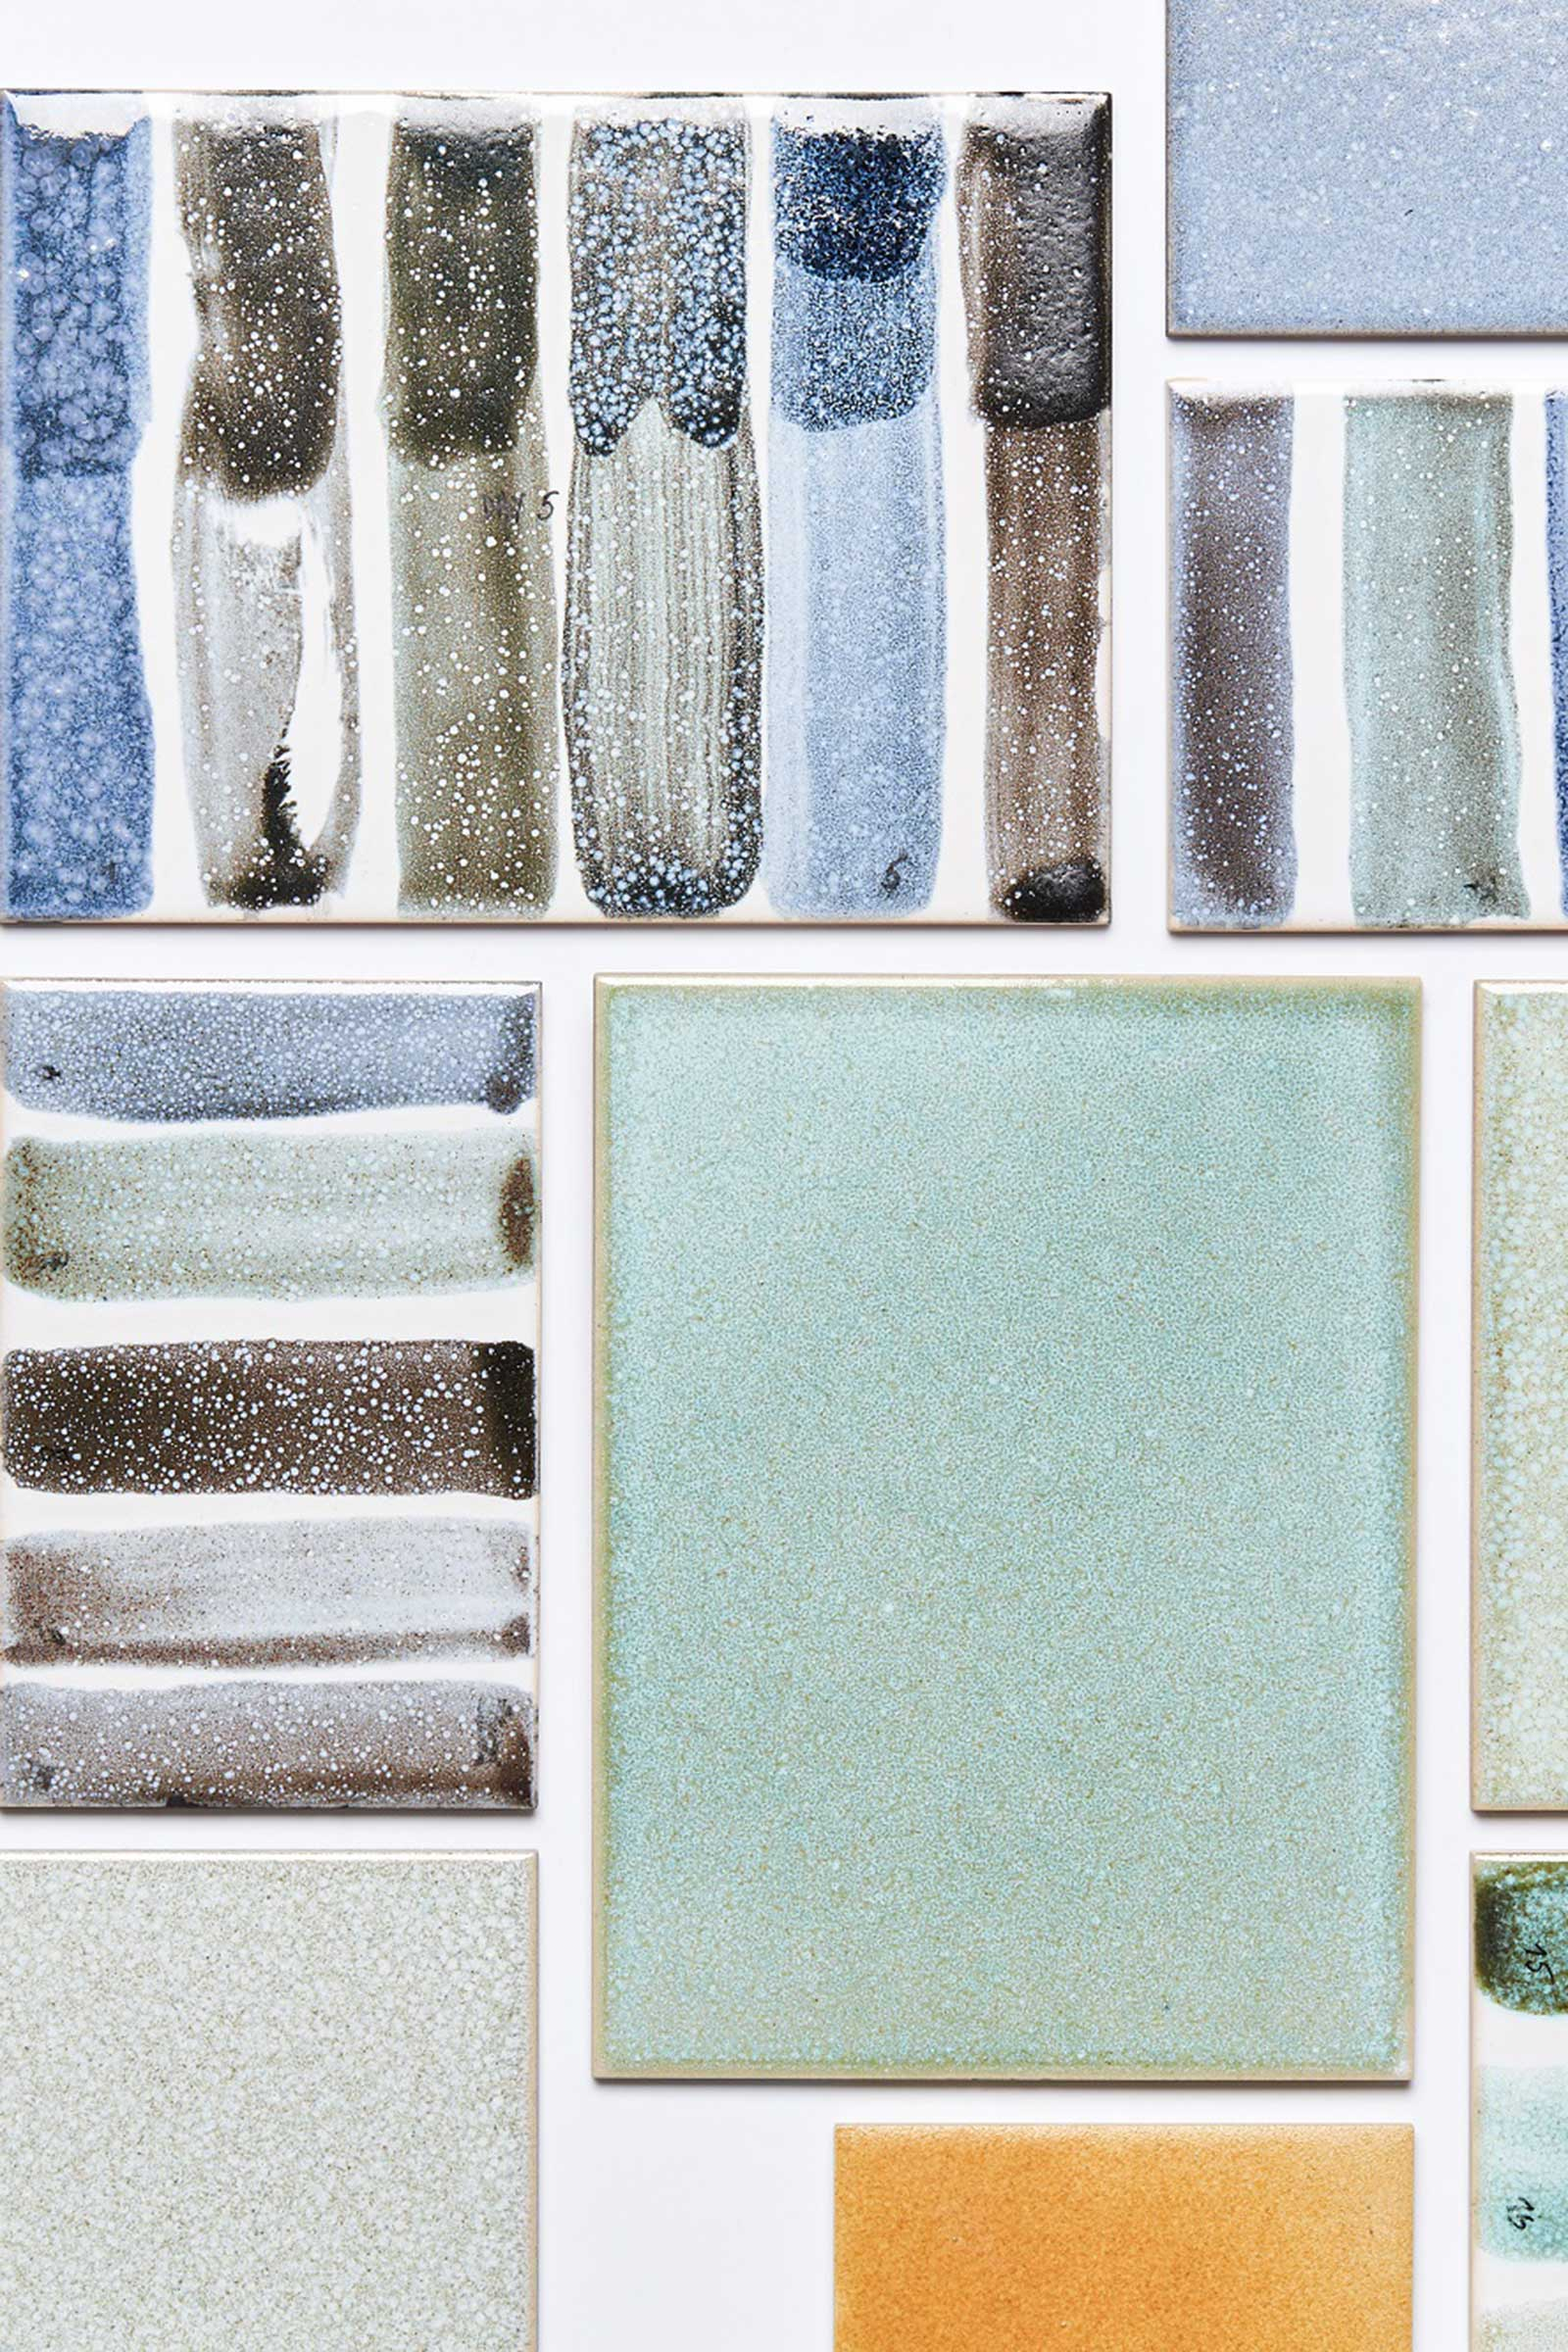 Both Studio Mixtura (left) and Atelier NL (right) work with rejected materials. The former transforms mineral residues from waste incineration into beautiful ceramic glazes, while the latter turns wild sand — rejected because it doesn't produce clear glass — into colourful wares that reflect its original terrain. Images courtesy of Dutch Design Foundation